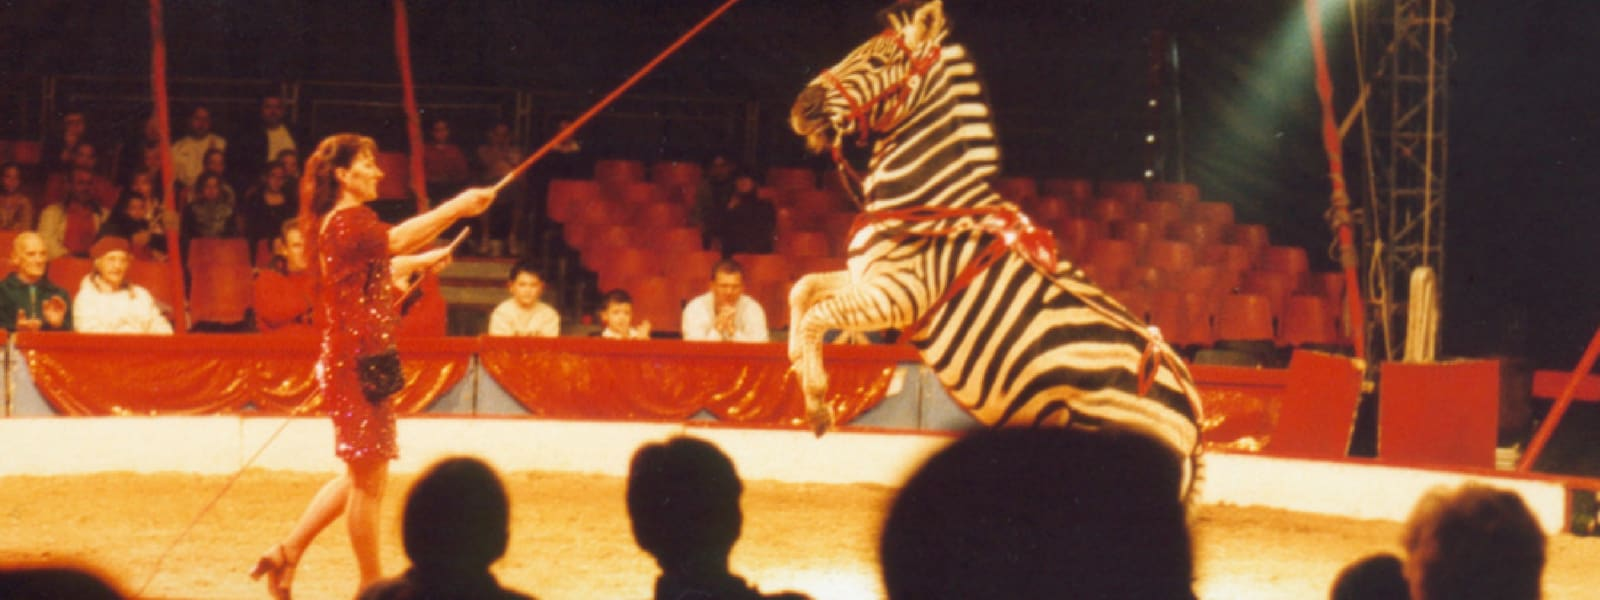 Victory for Scotland in the campaign to end animal circuses